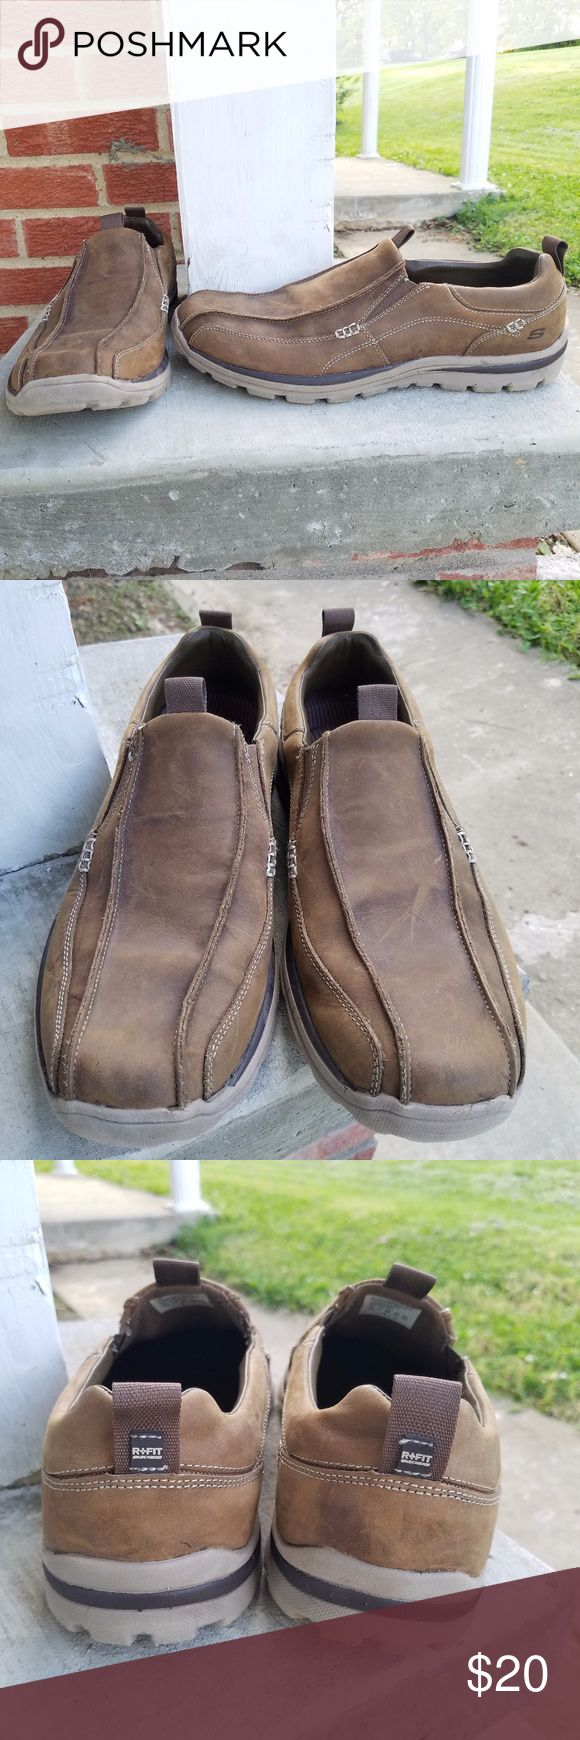 Skechers Relaxed Fit Men's Leather Shoes Size 12 Leather Upper with memory foam in the soles. Worn a handful of times! Size 12 men's Skechers Relaxed Fit slip on shoes. Perfect for work! Bundle and save! Skechers Shoes Loafers & Slip-Ons